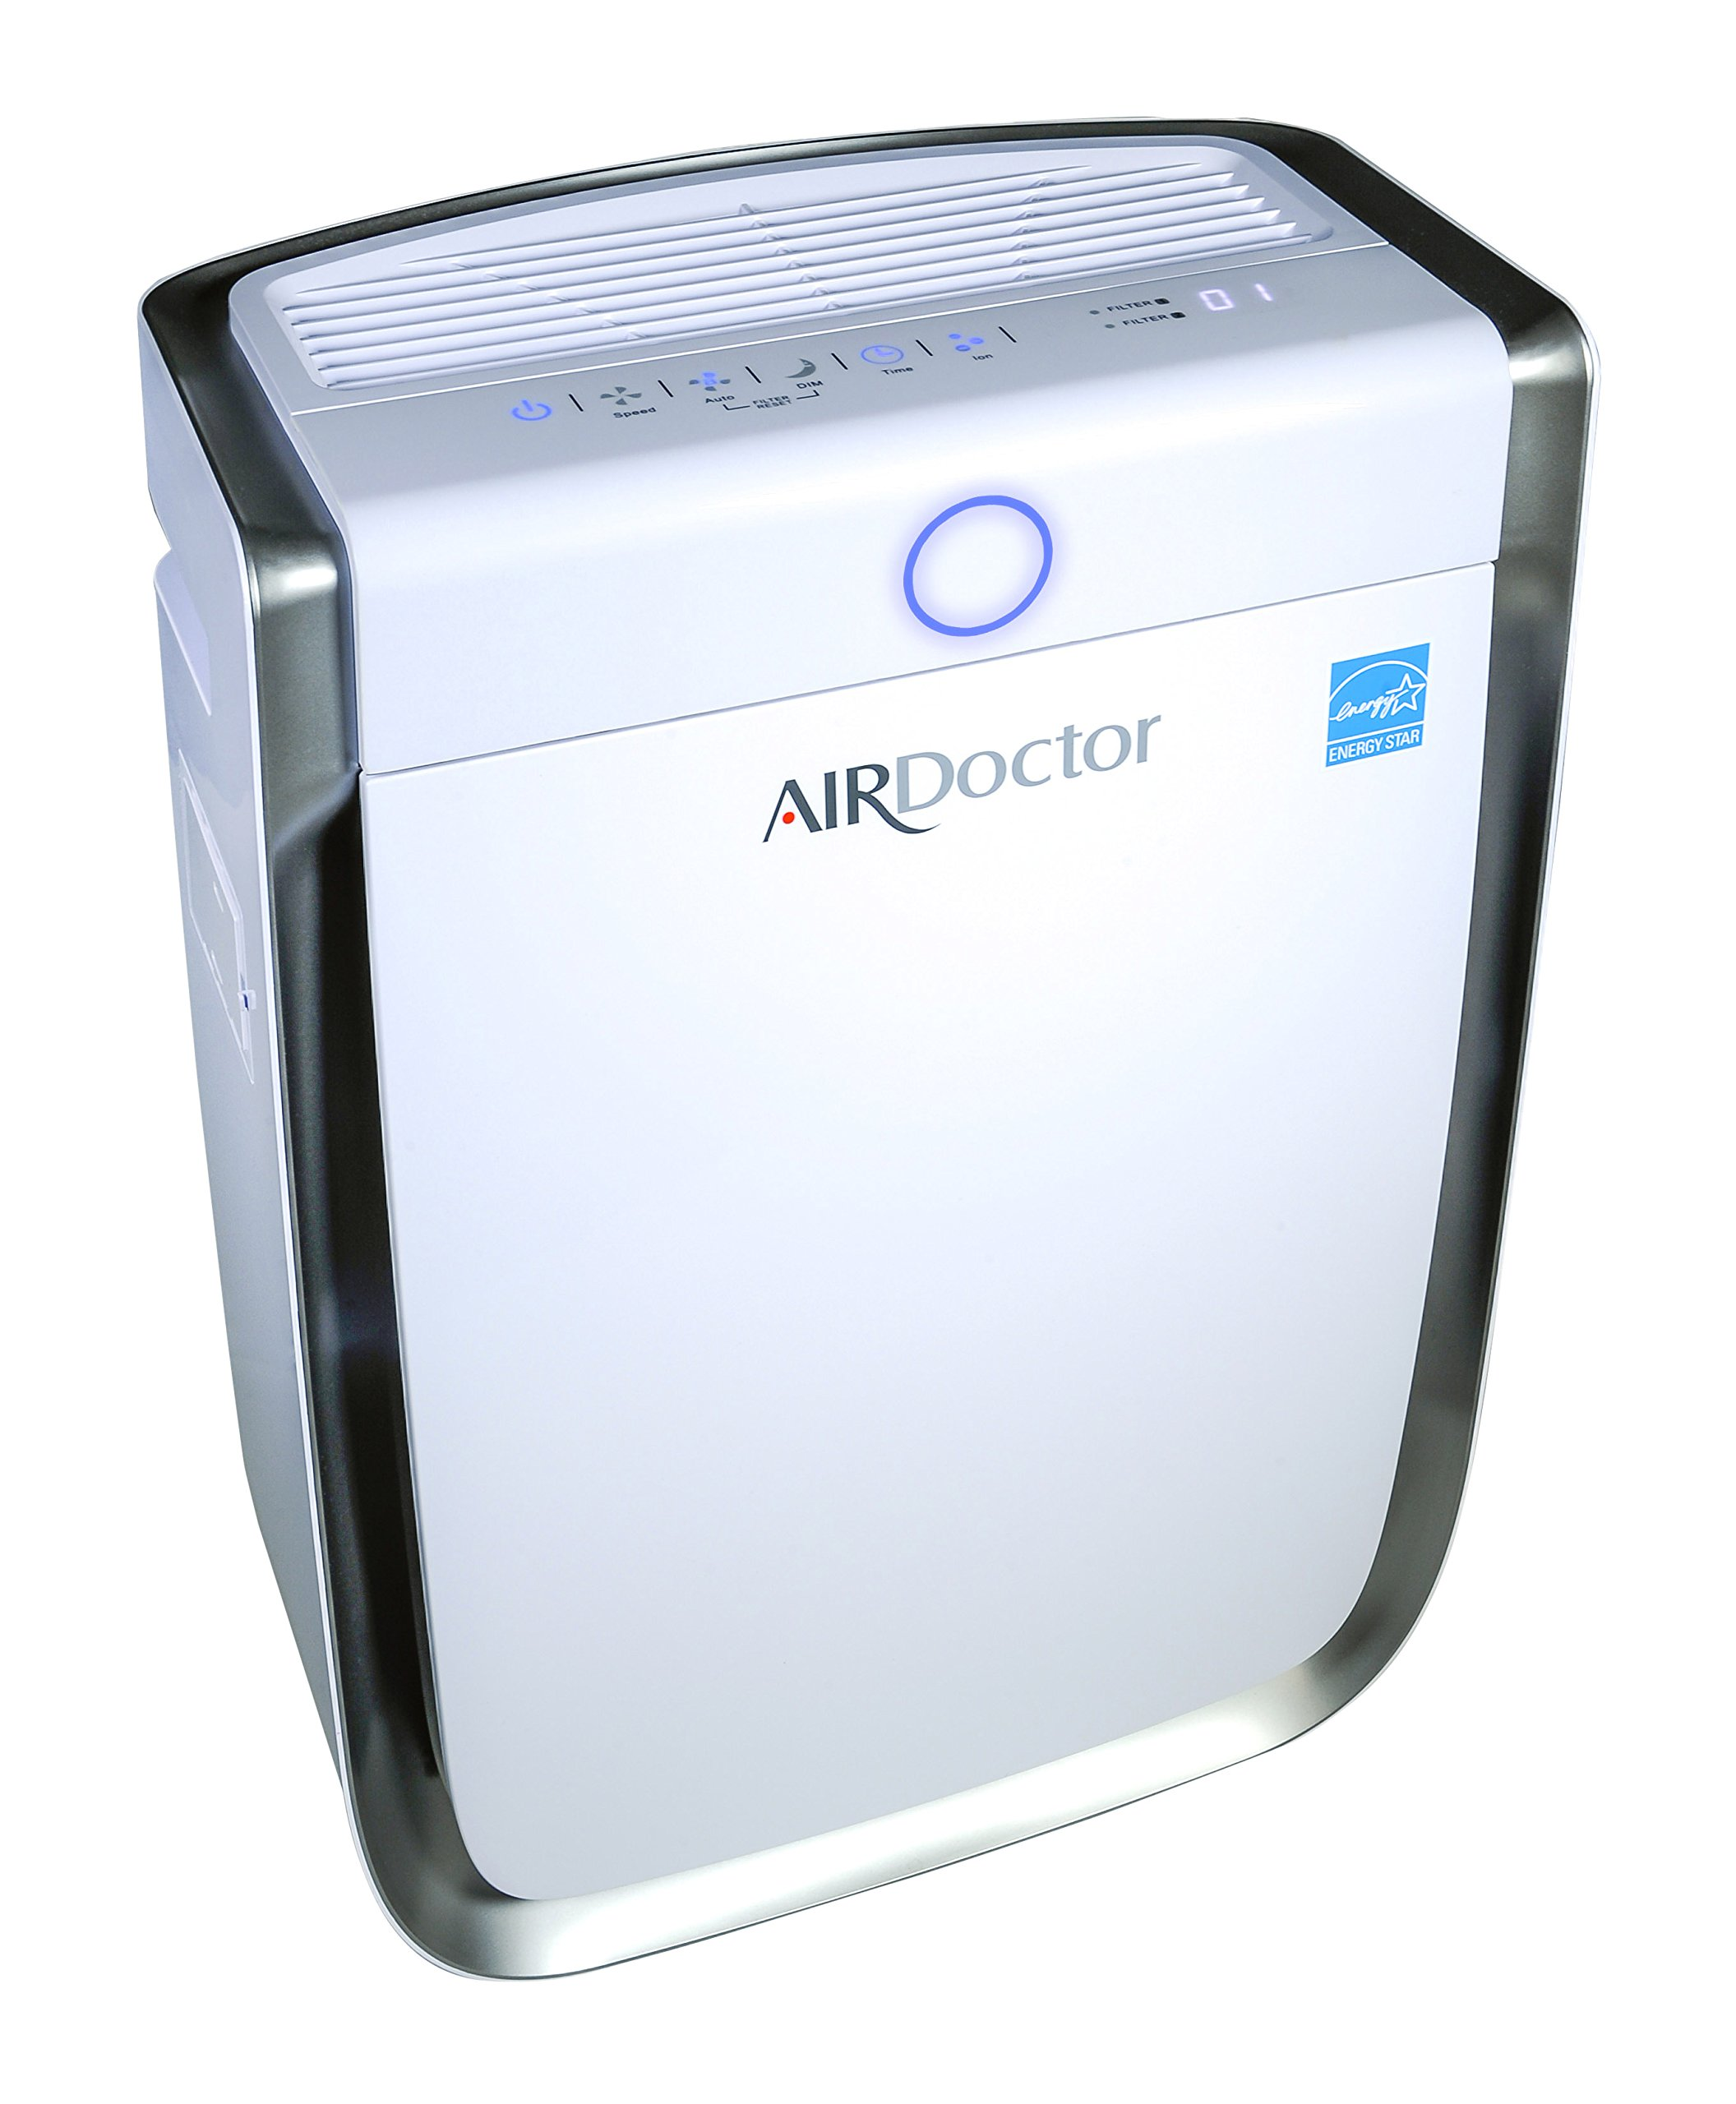 AIR DOCTOR 4-in1 Air Purifier, Ultra HEPA, Carbon & VOC Filters Eliminate Smoke, Mold, Germs & Viruses, Pollen, Pet Dander, Pet Hair, Viruses, Bacteria, Odors and Dangerous Gasses - White